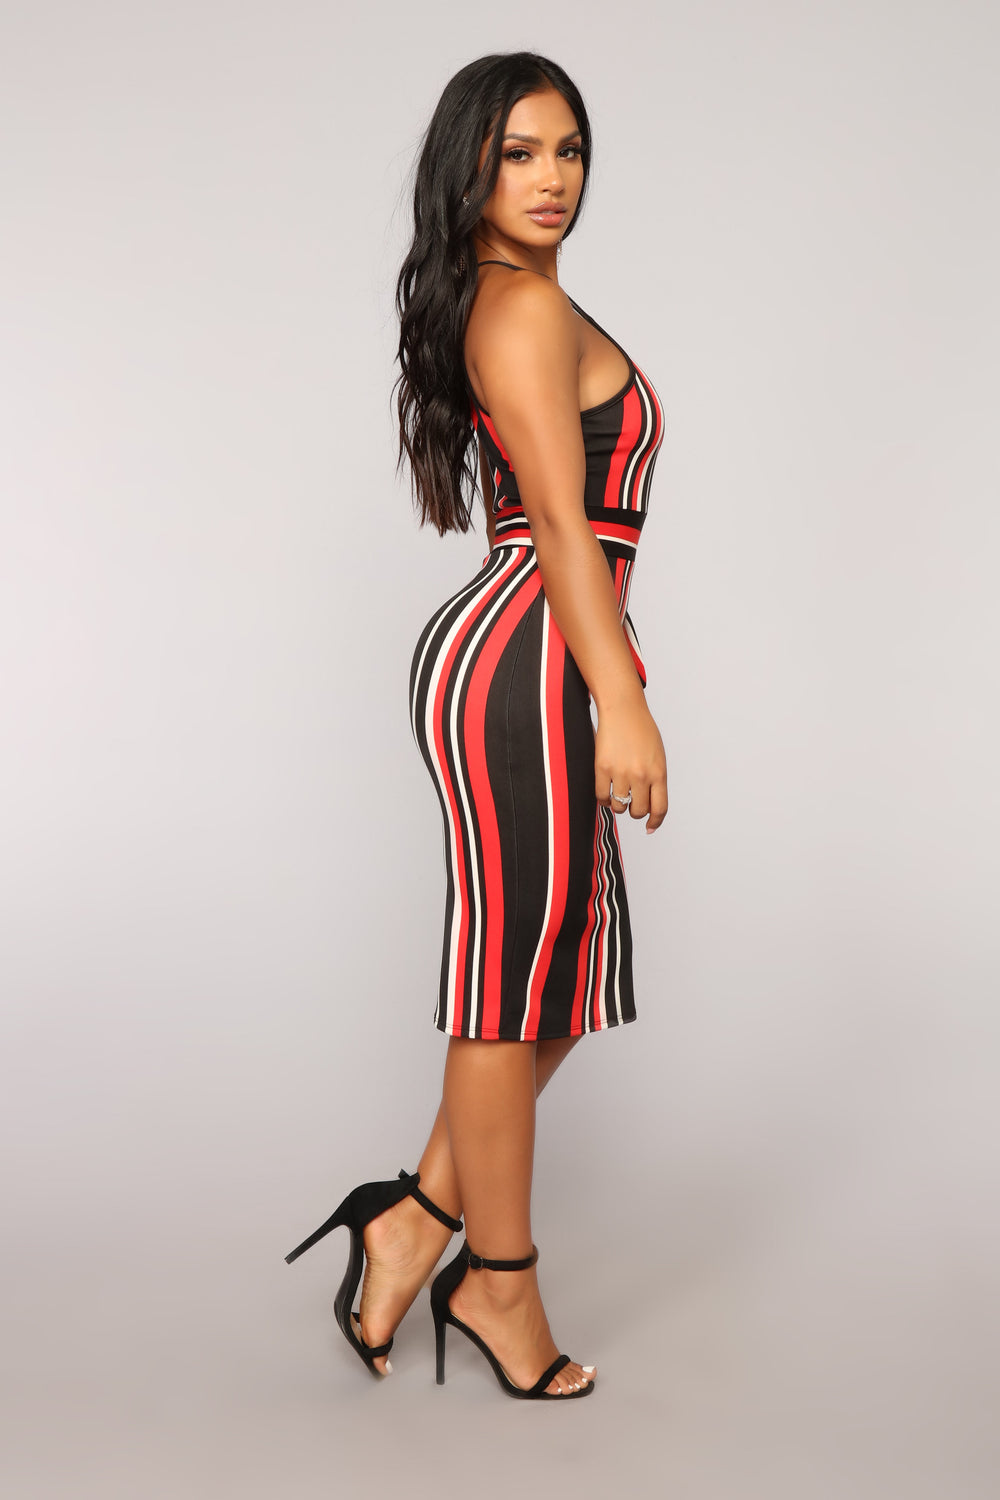 Hot Dynamite Cutout Dress - Black/Red